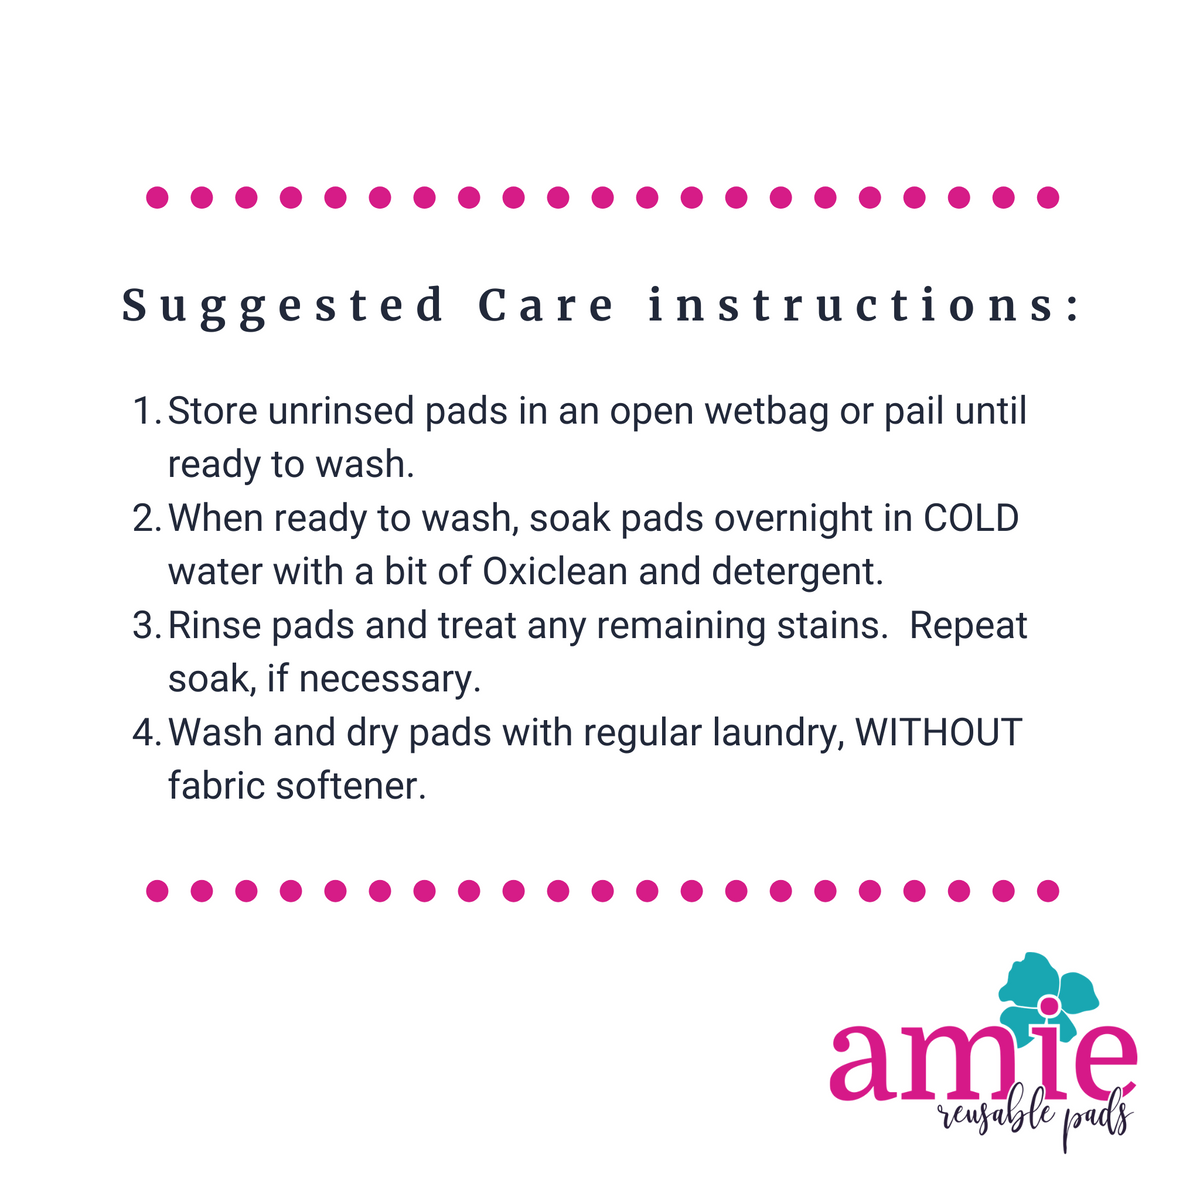 Suggested care instructions for washing Amie Reusable Pads